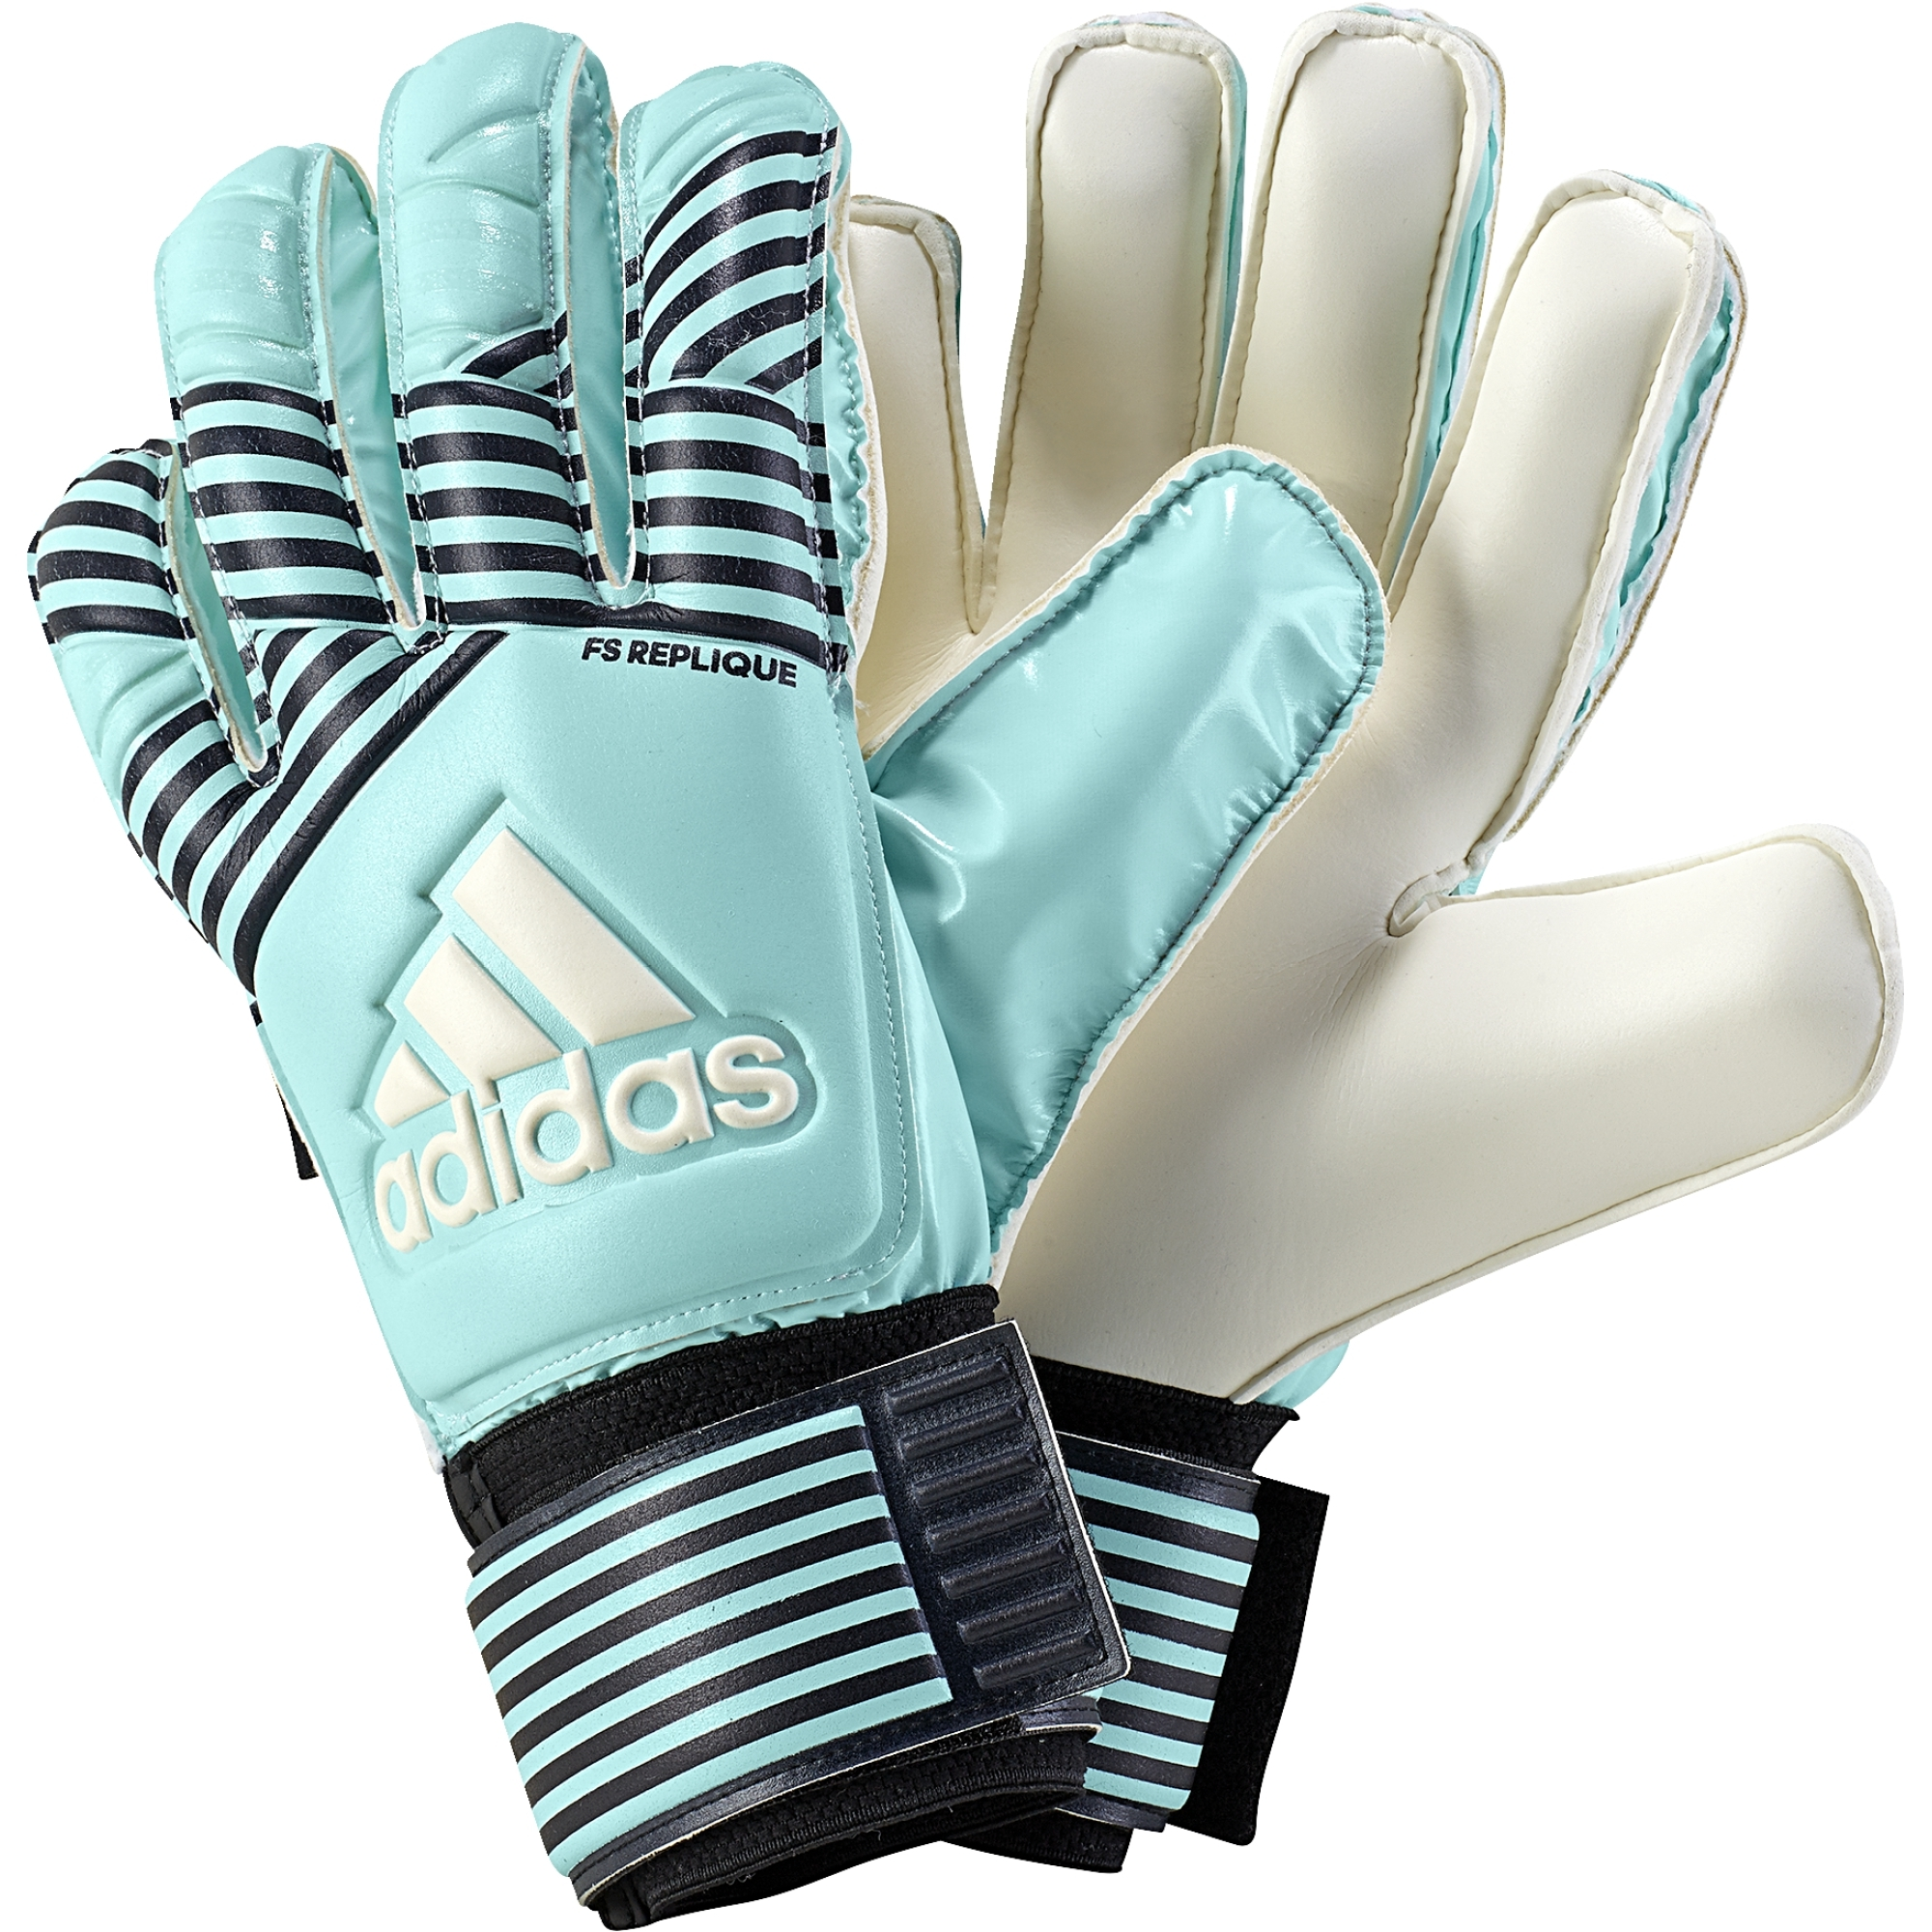 ADIDAS brankářské rukavice Ace Fingersave Replique